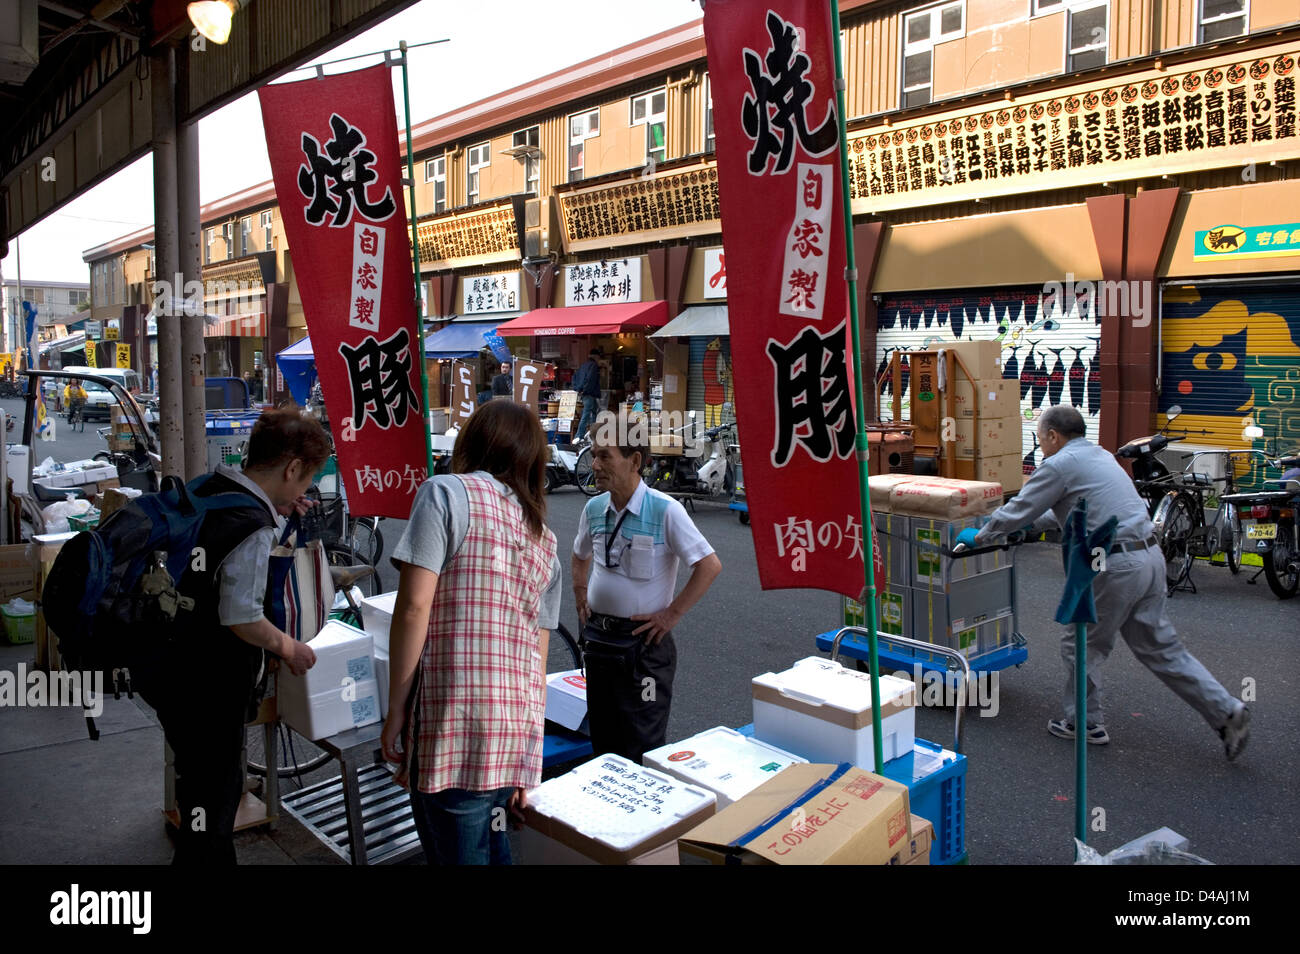 Early morning shoppers looking for fresh seafood and good deals at shops near Tsukiji Wholesale Fish Market in Tokyo. - Stock Image